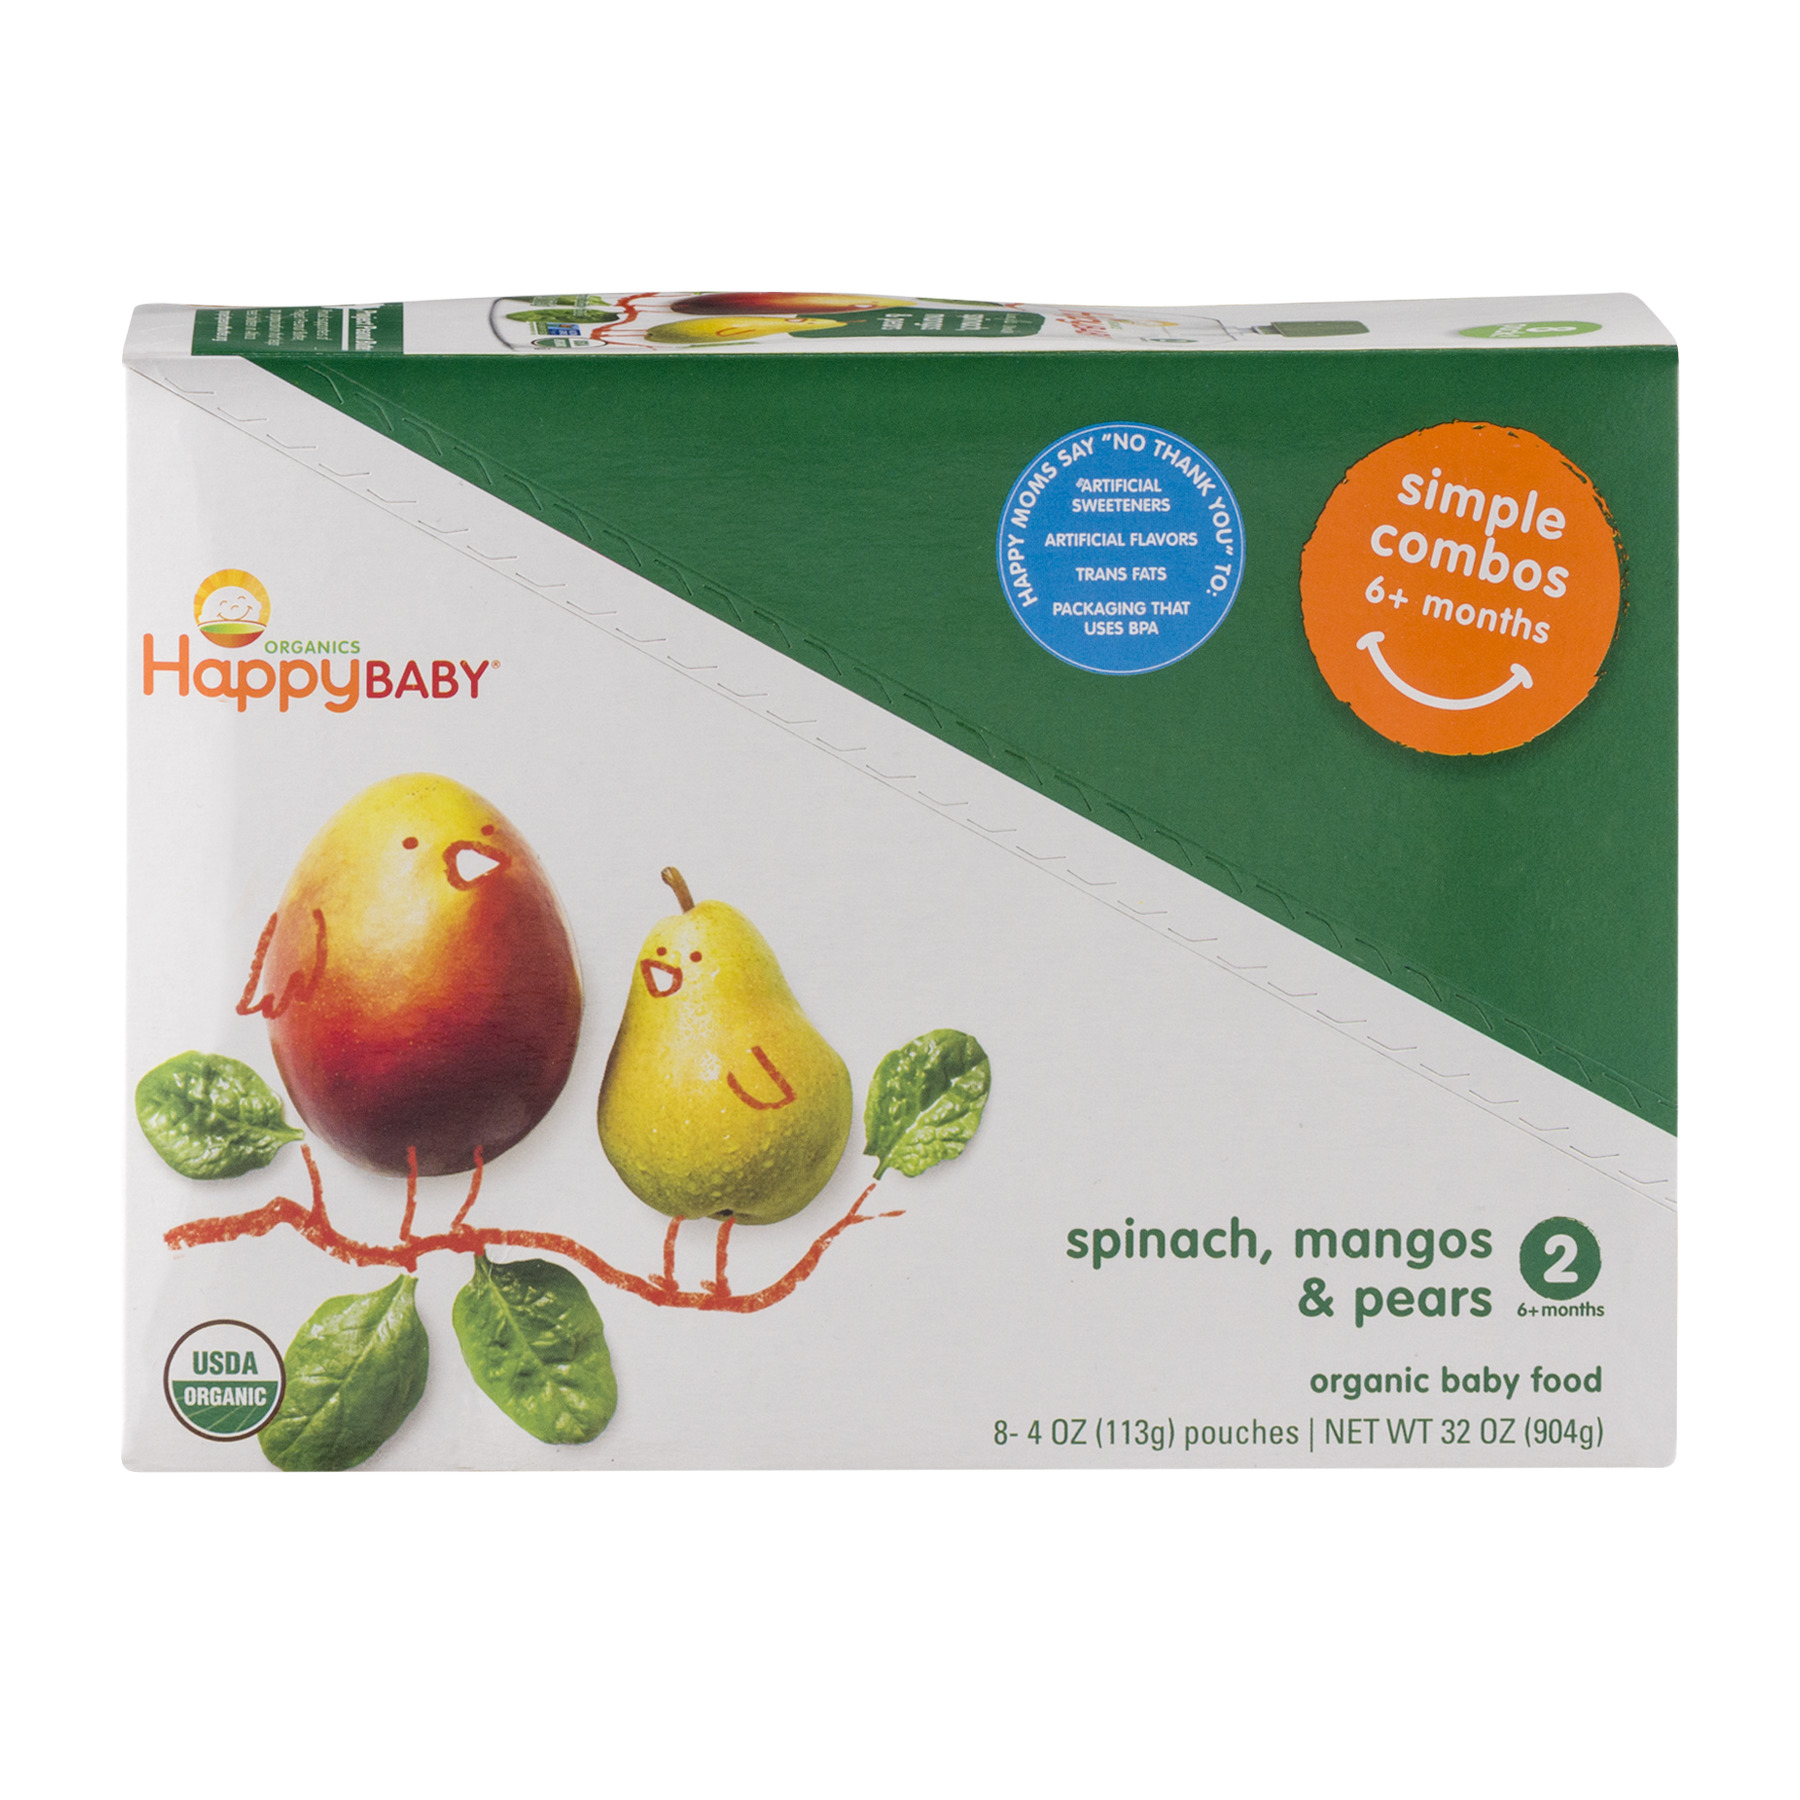 Happy Baby Simple Combos, Stage 2, Organic Baby Food, Pears, Mango & Spinach - 4 oz